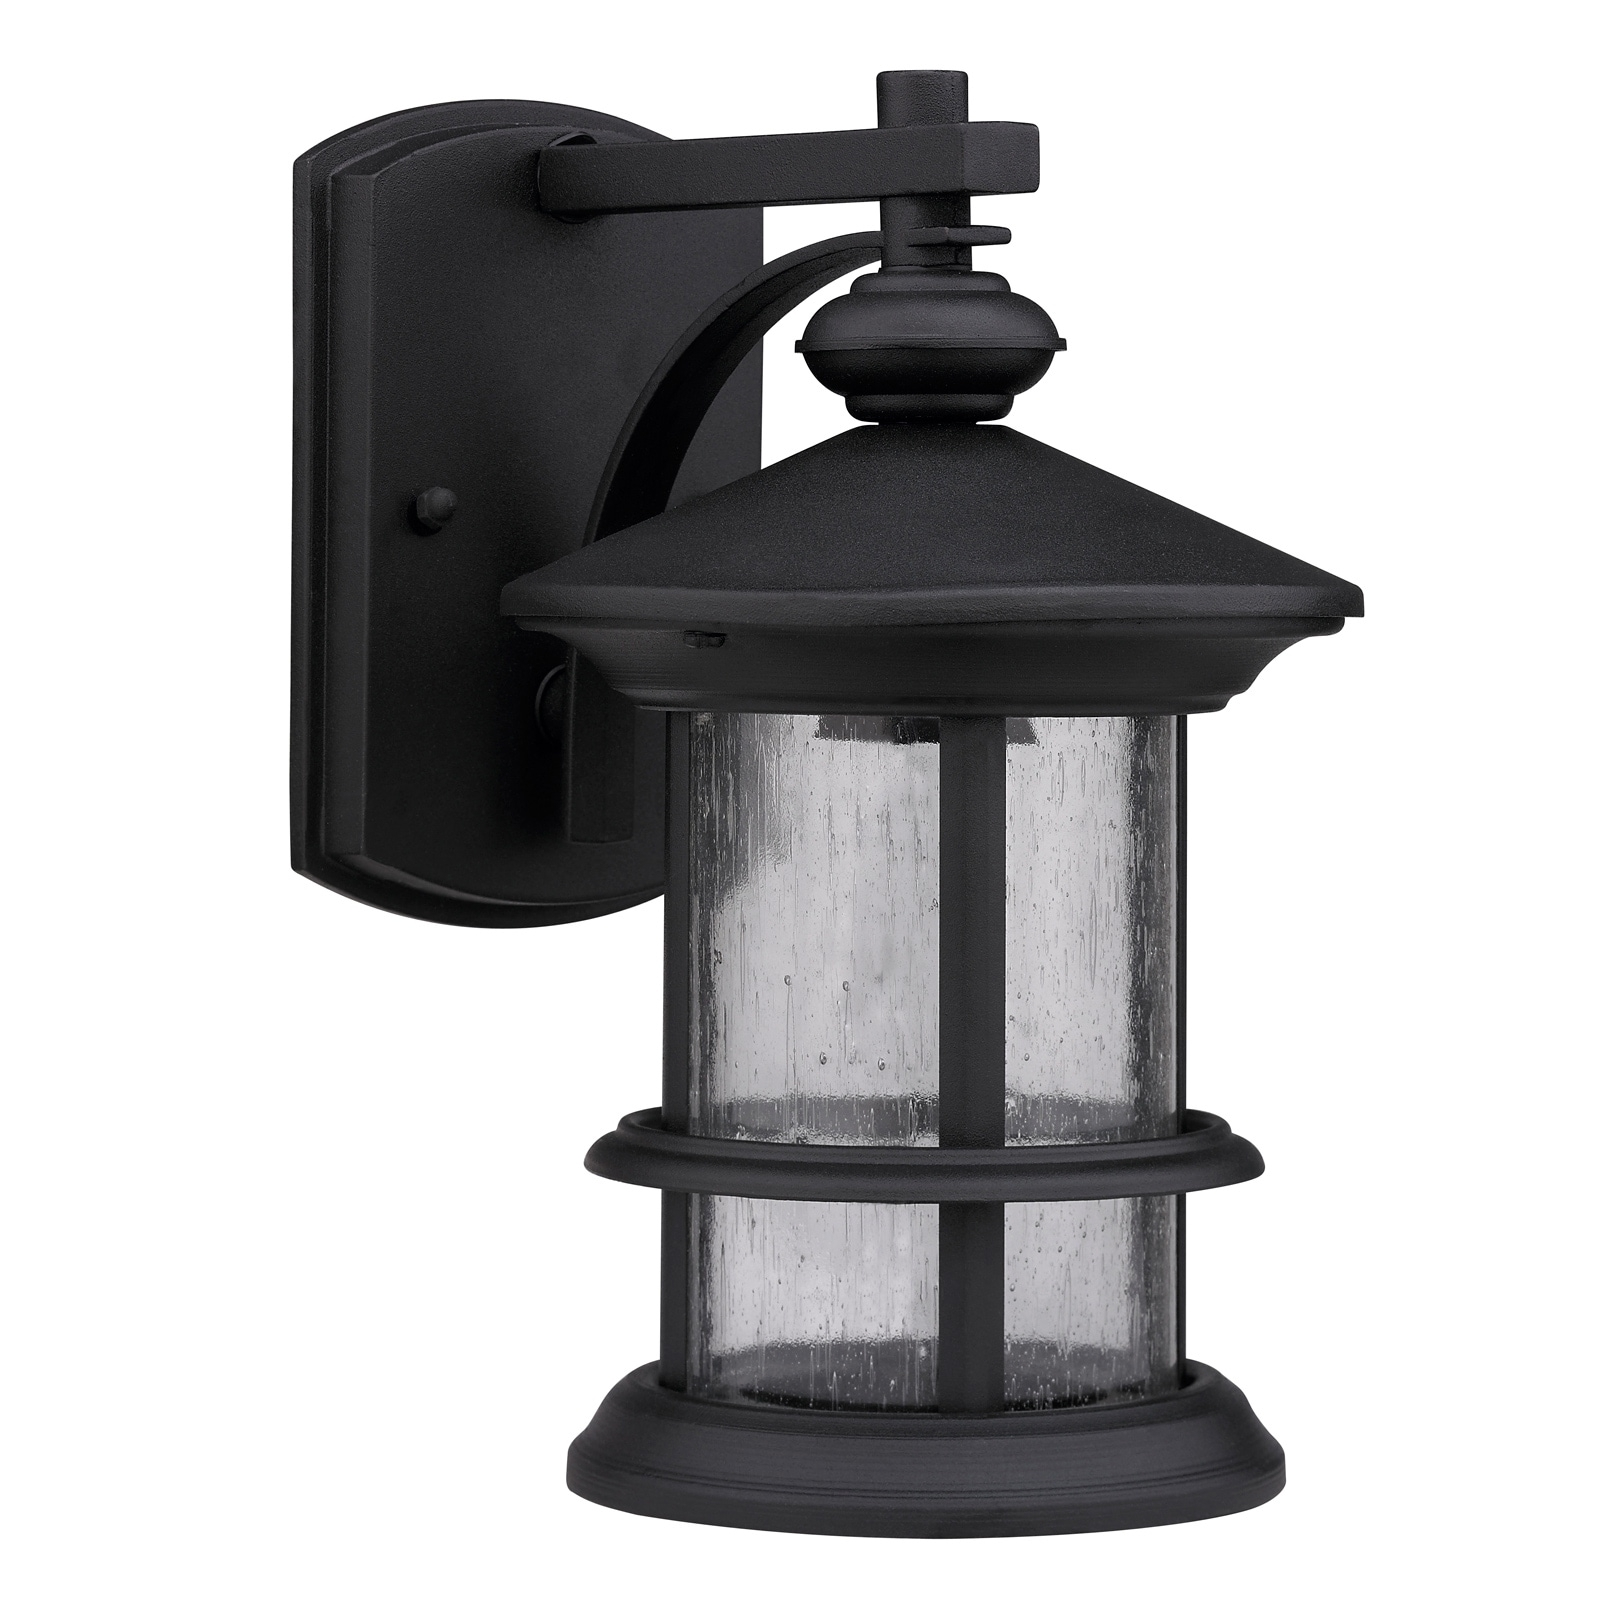 Inspiration about Transitional Black One Light Weatherproof Outdoor Wall Fixture Within Transitional Outdoor Wall Lighting (#6 of 15)